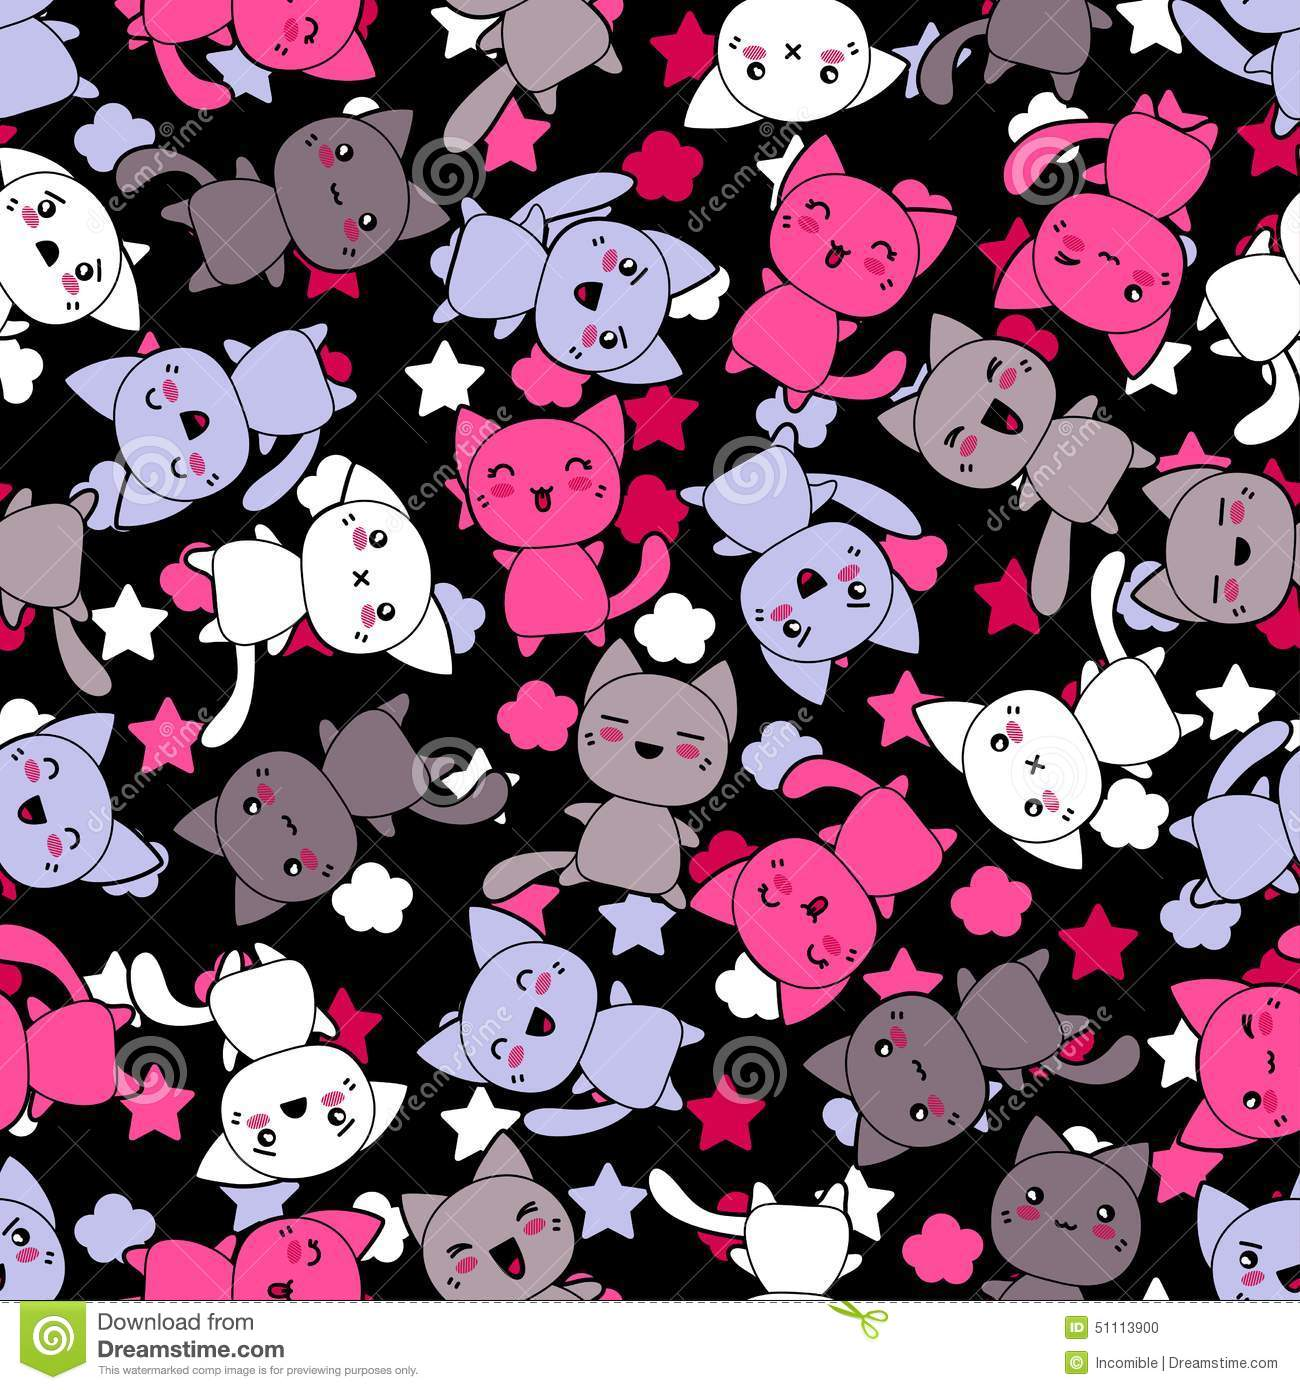 Cute Squishies Wallpaper Seamless Pattern With Cute Kawaii Doodle Cats Stock Vector